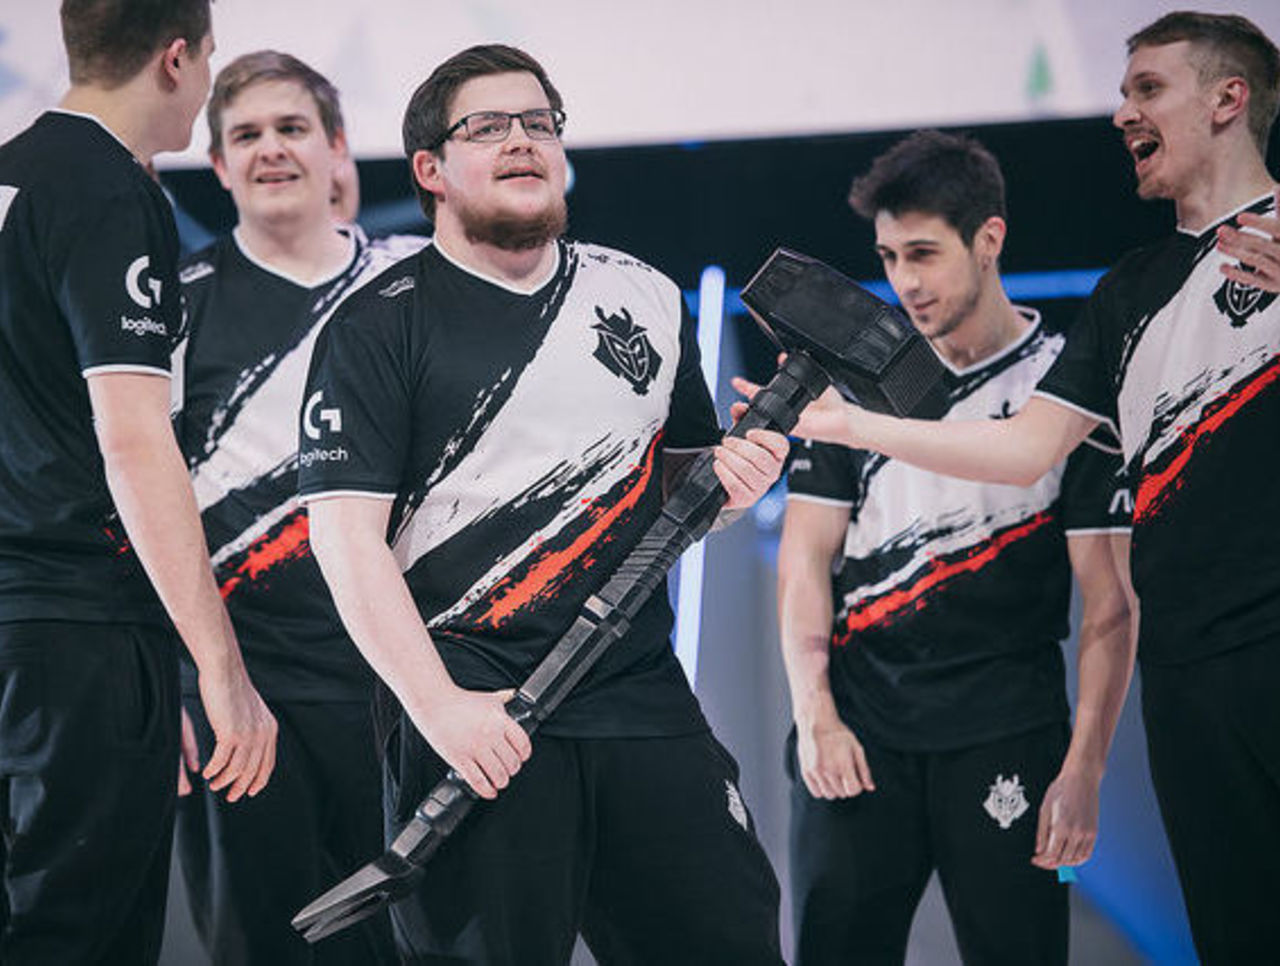 theScore esports Daily (Feb. 19): G2 Esports win Six Invitational, Fnatic fail to qualify for New Legends while Cloud9 G2 Esports squeak by